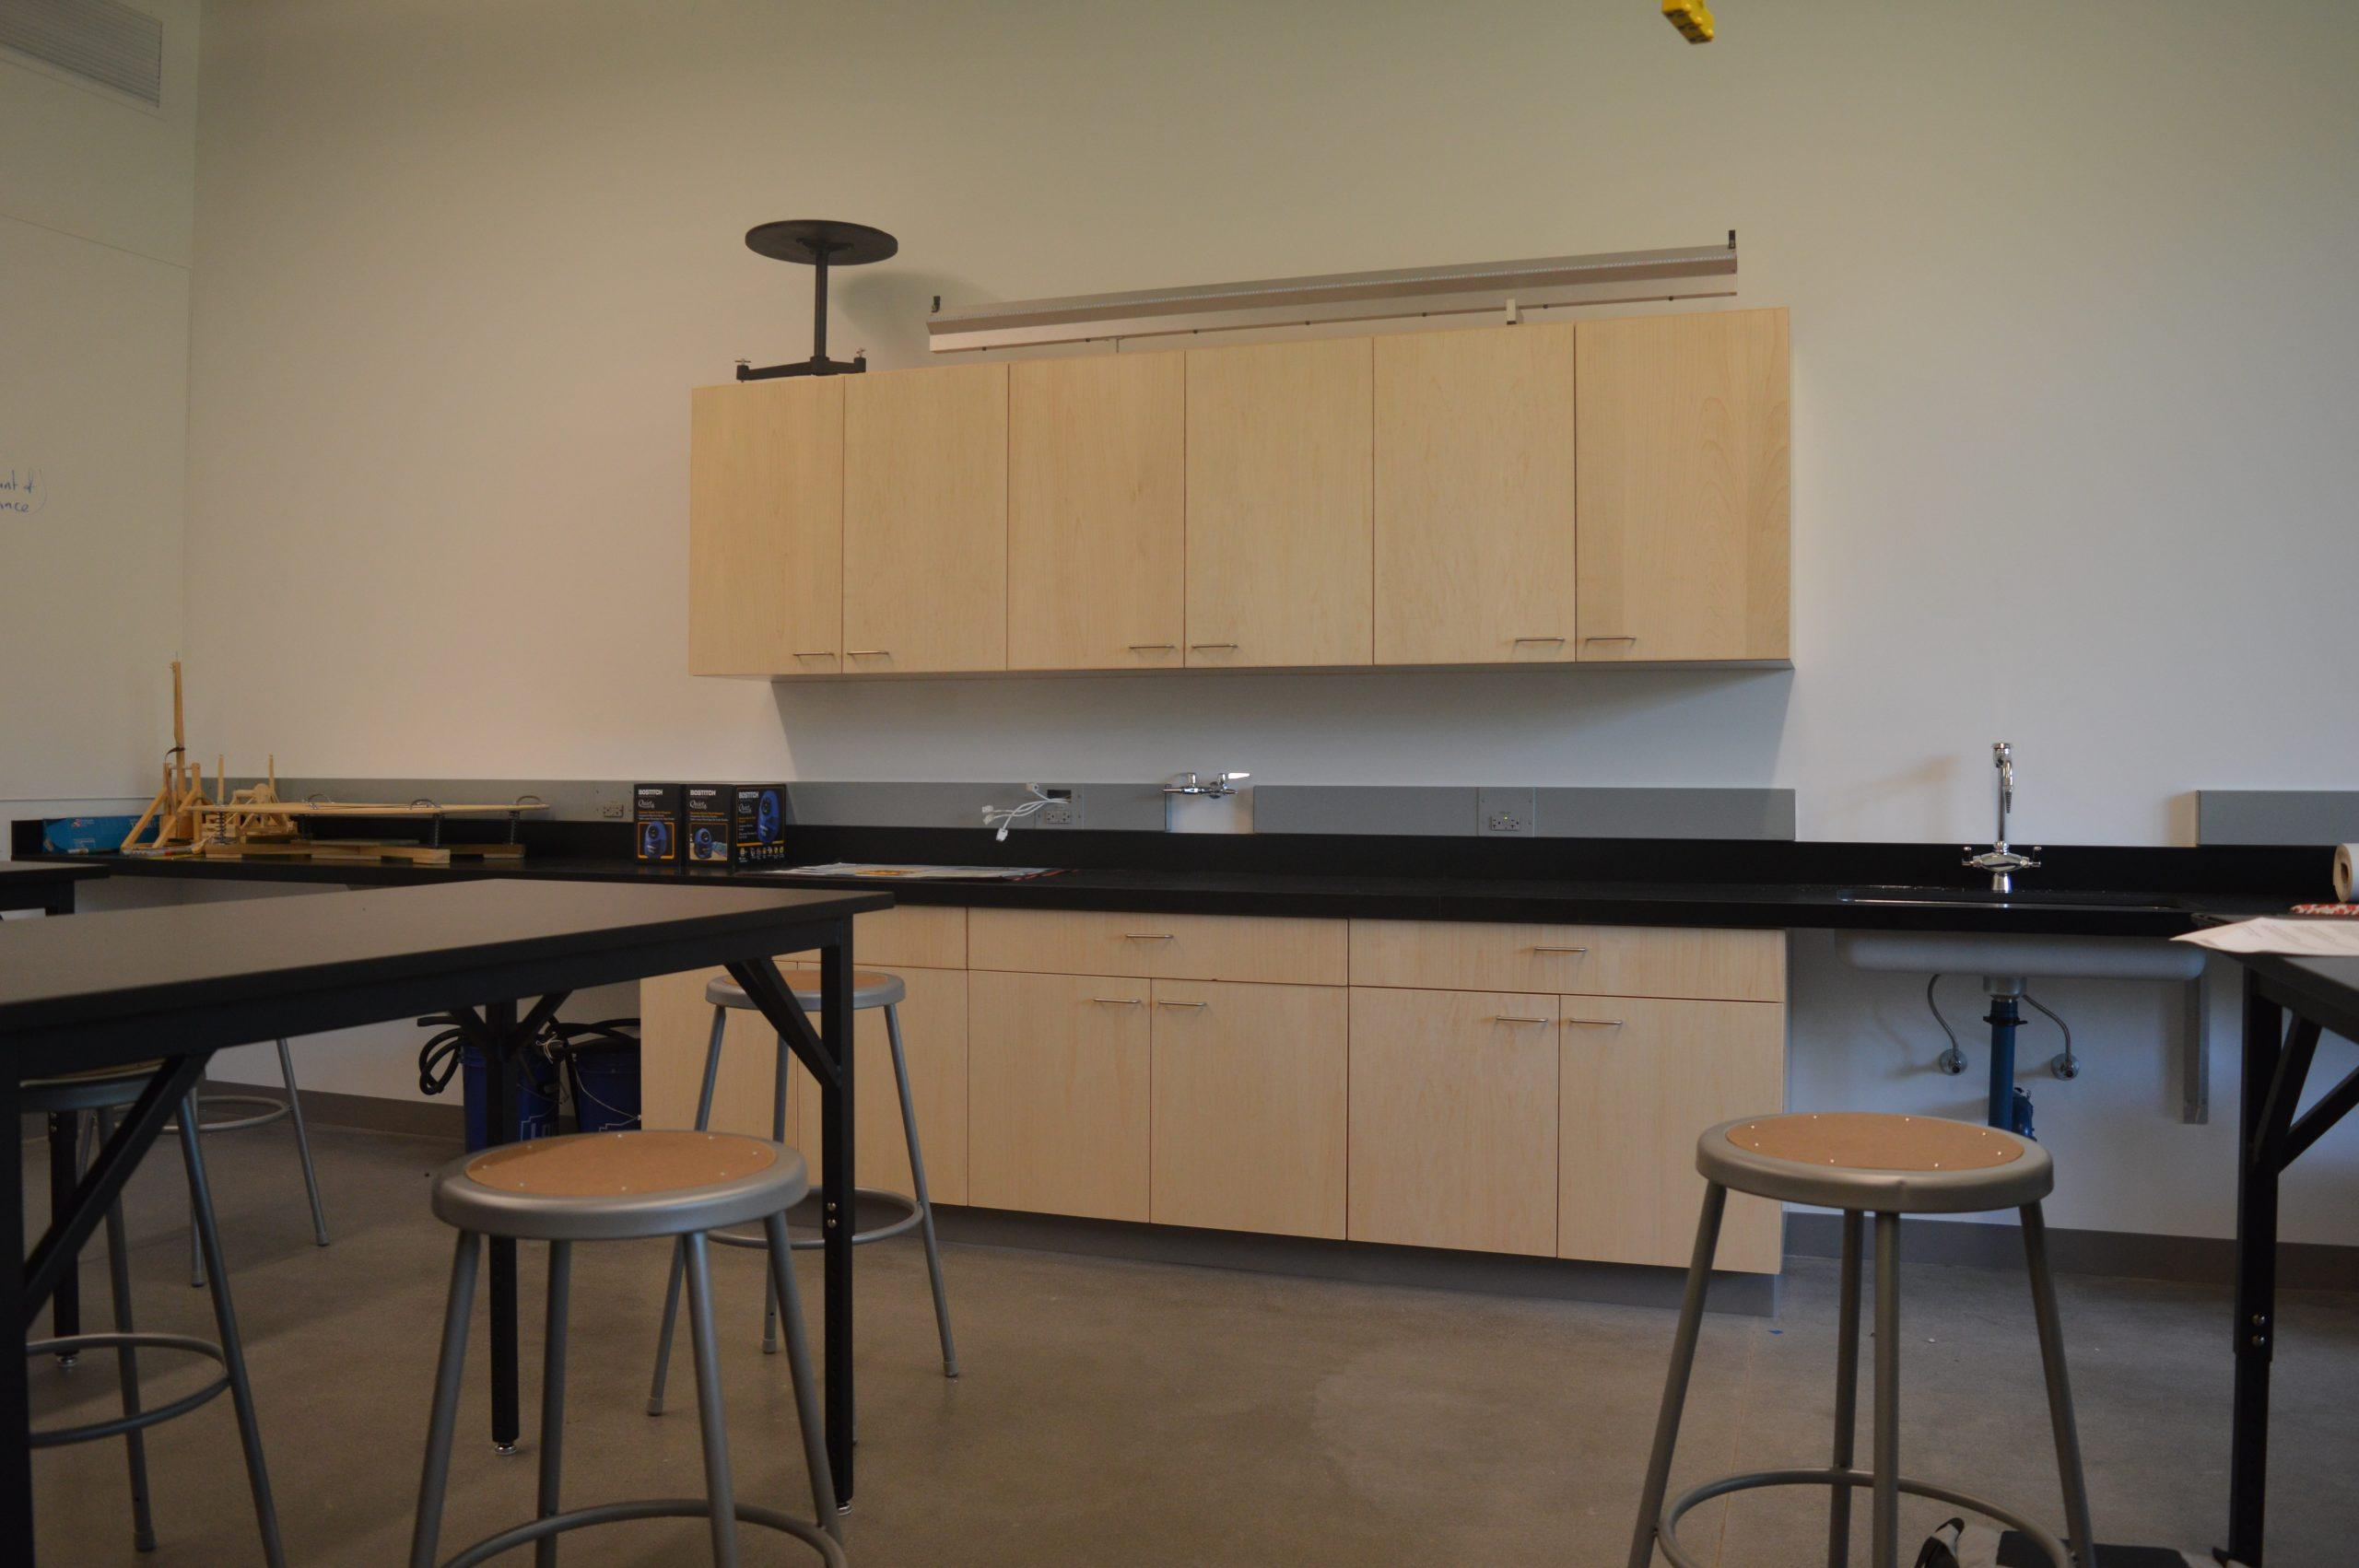 With+a+permit+for+occupancy%2C+students+explored+the+new+space.+